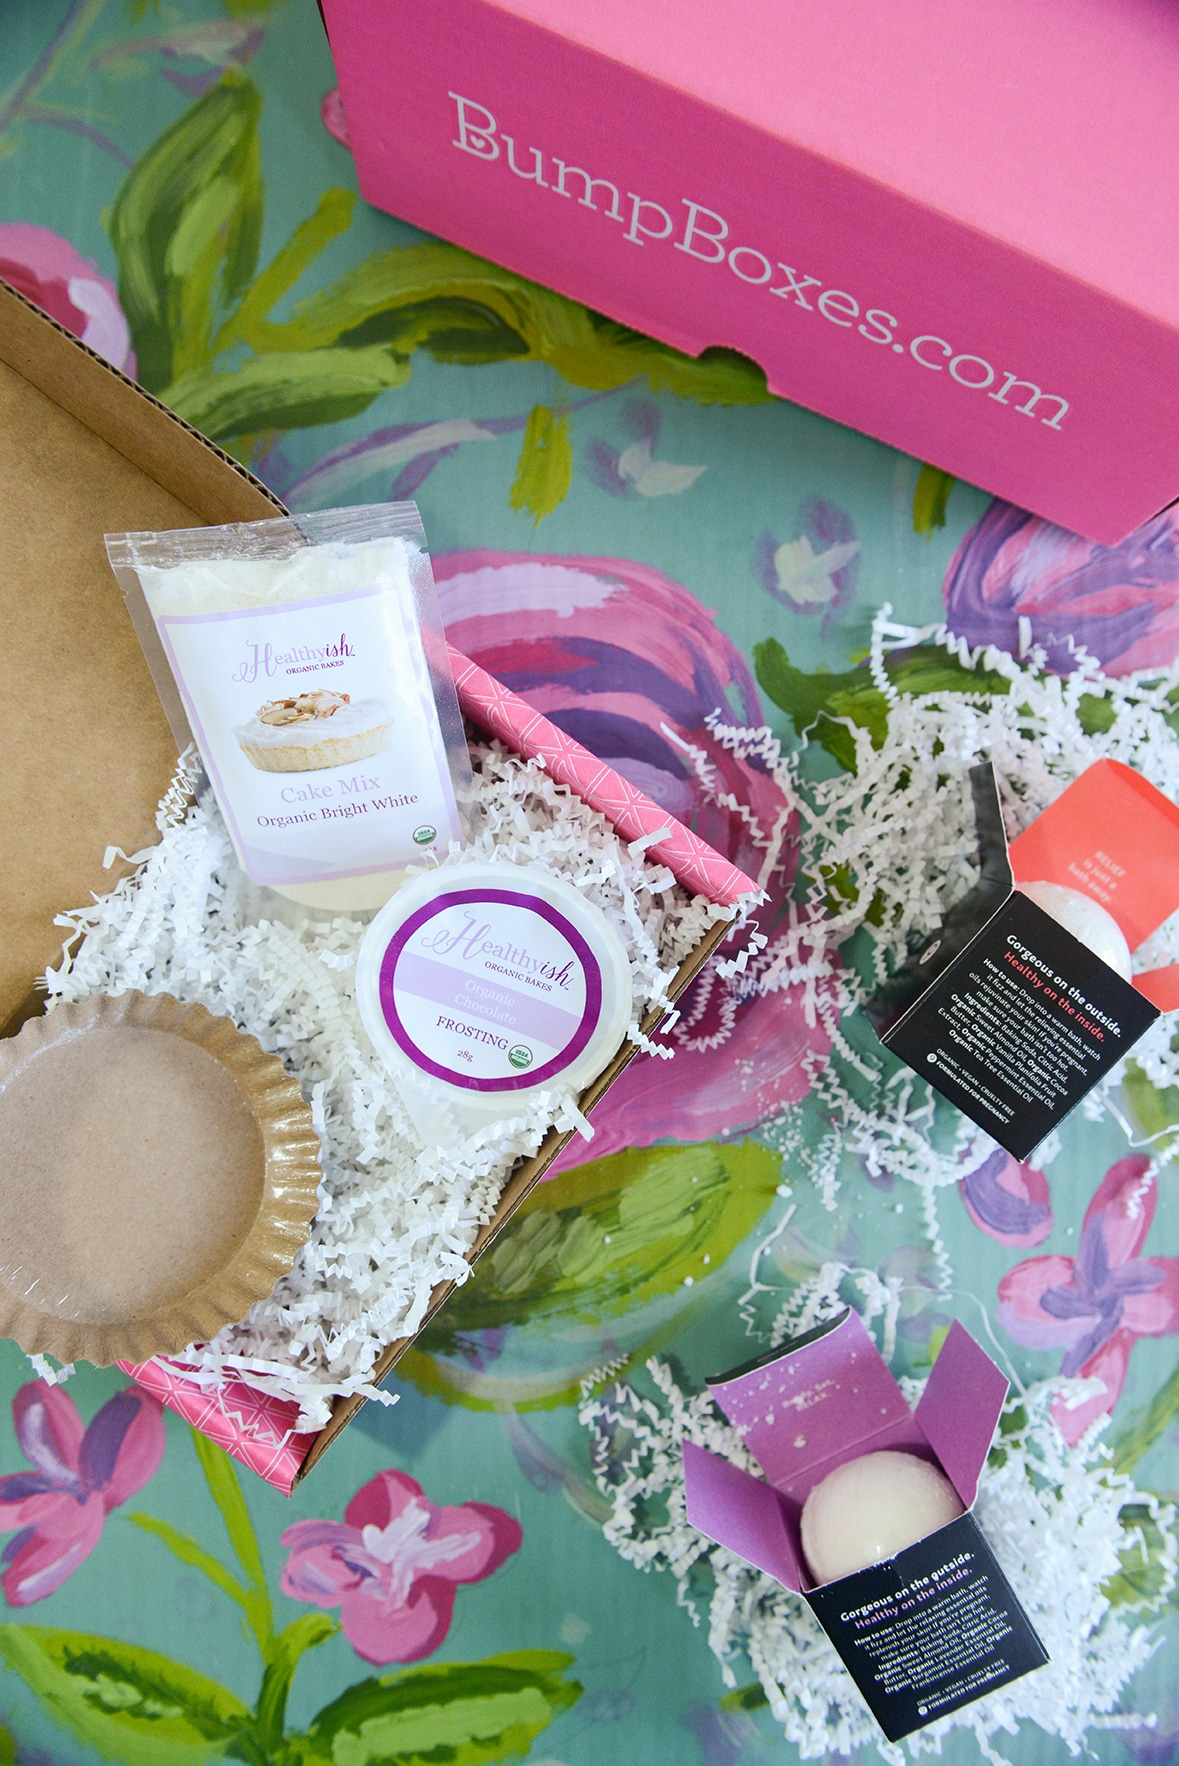 Healthyish + Bump Box: Cakes For All Your Milestones // www.HealthyishFoods.com